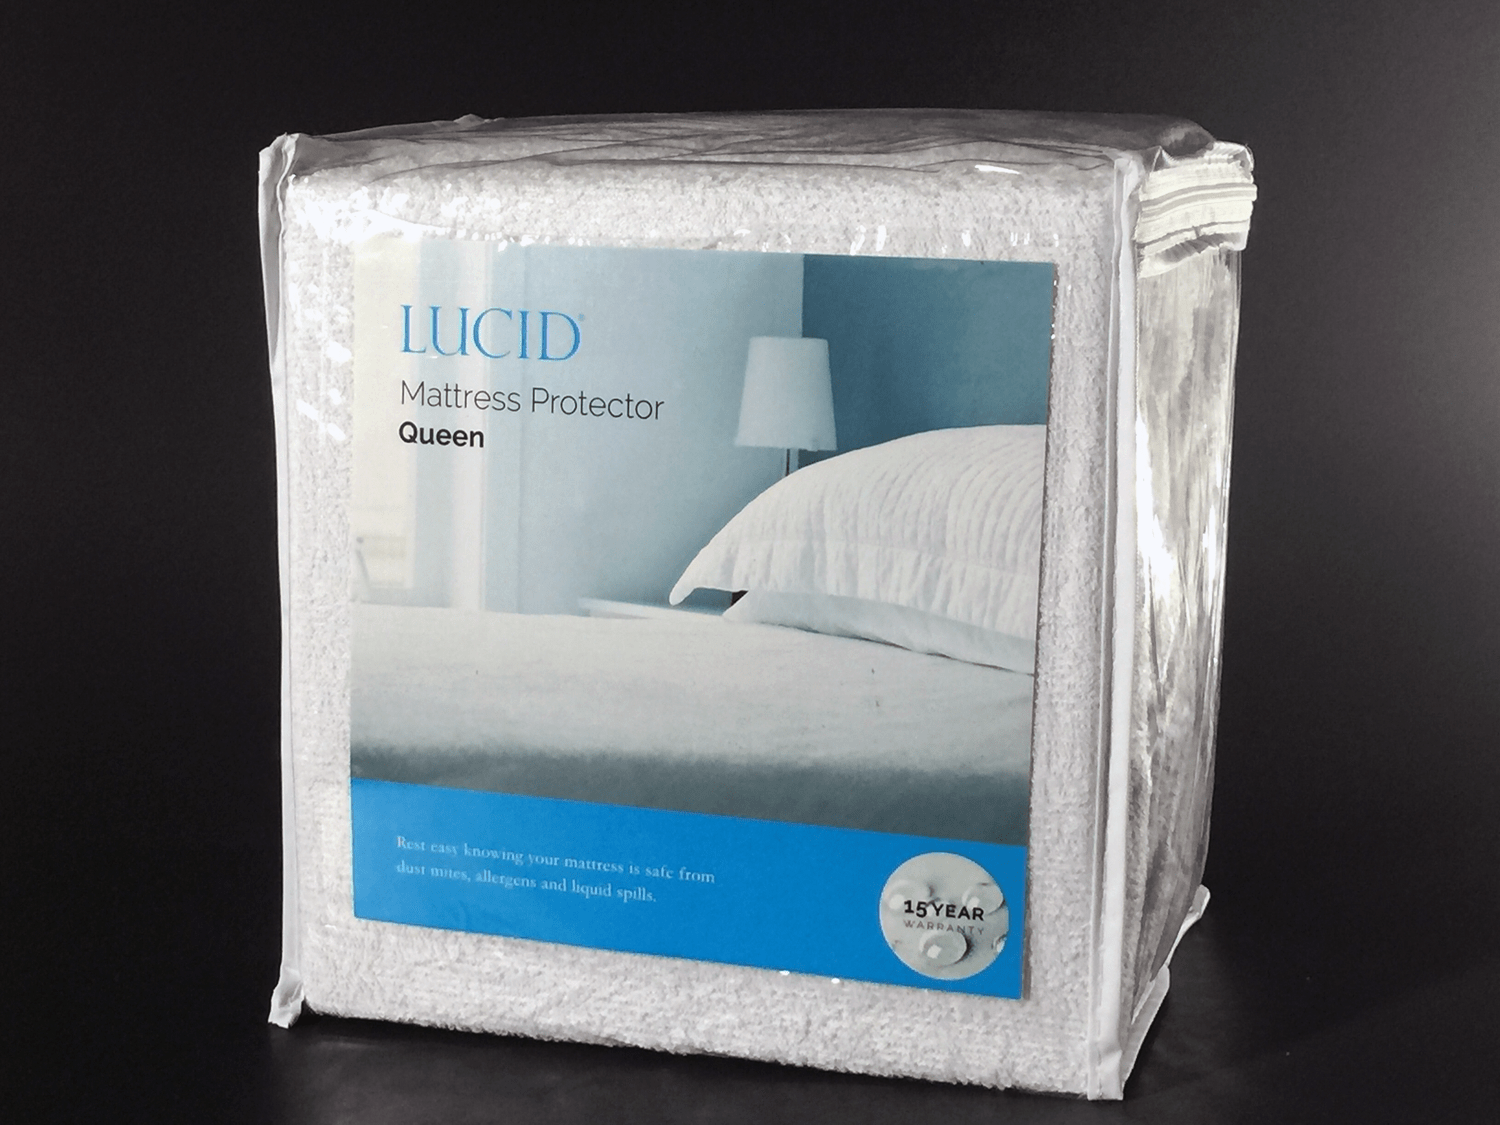 Lucid Mattress Protector Review Sleepopolis